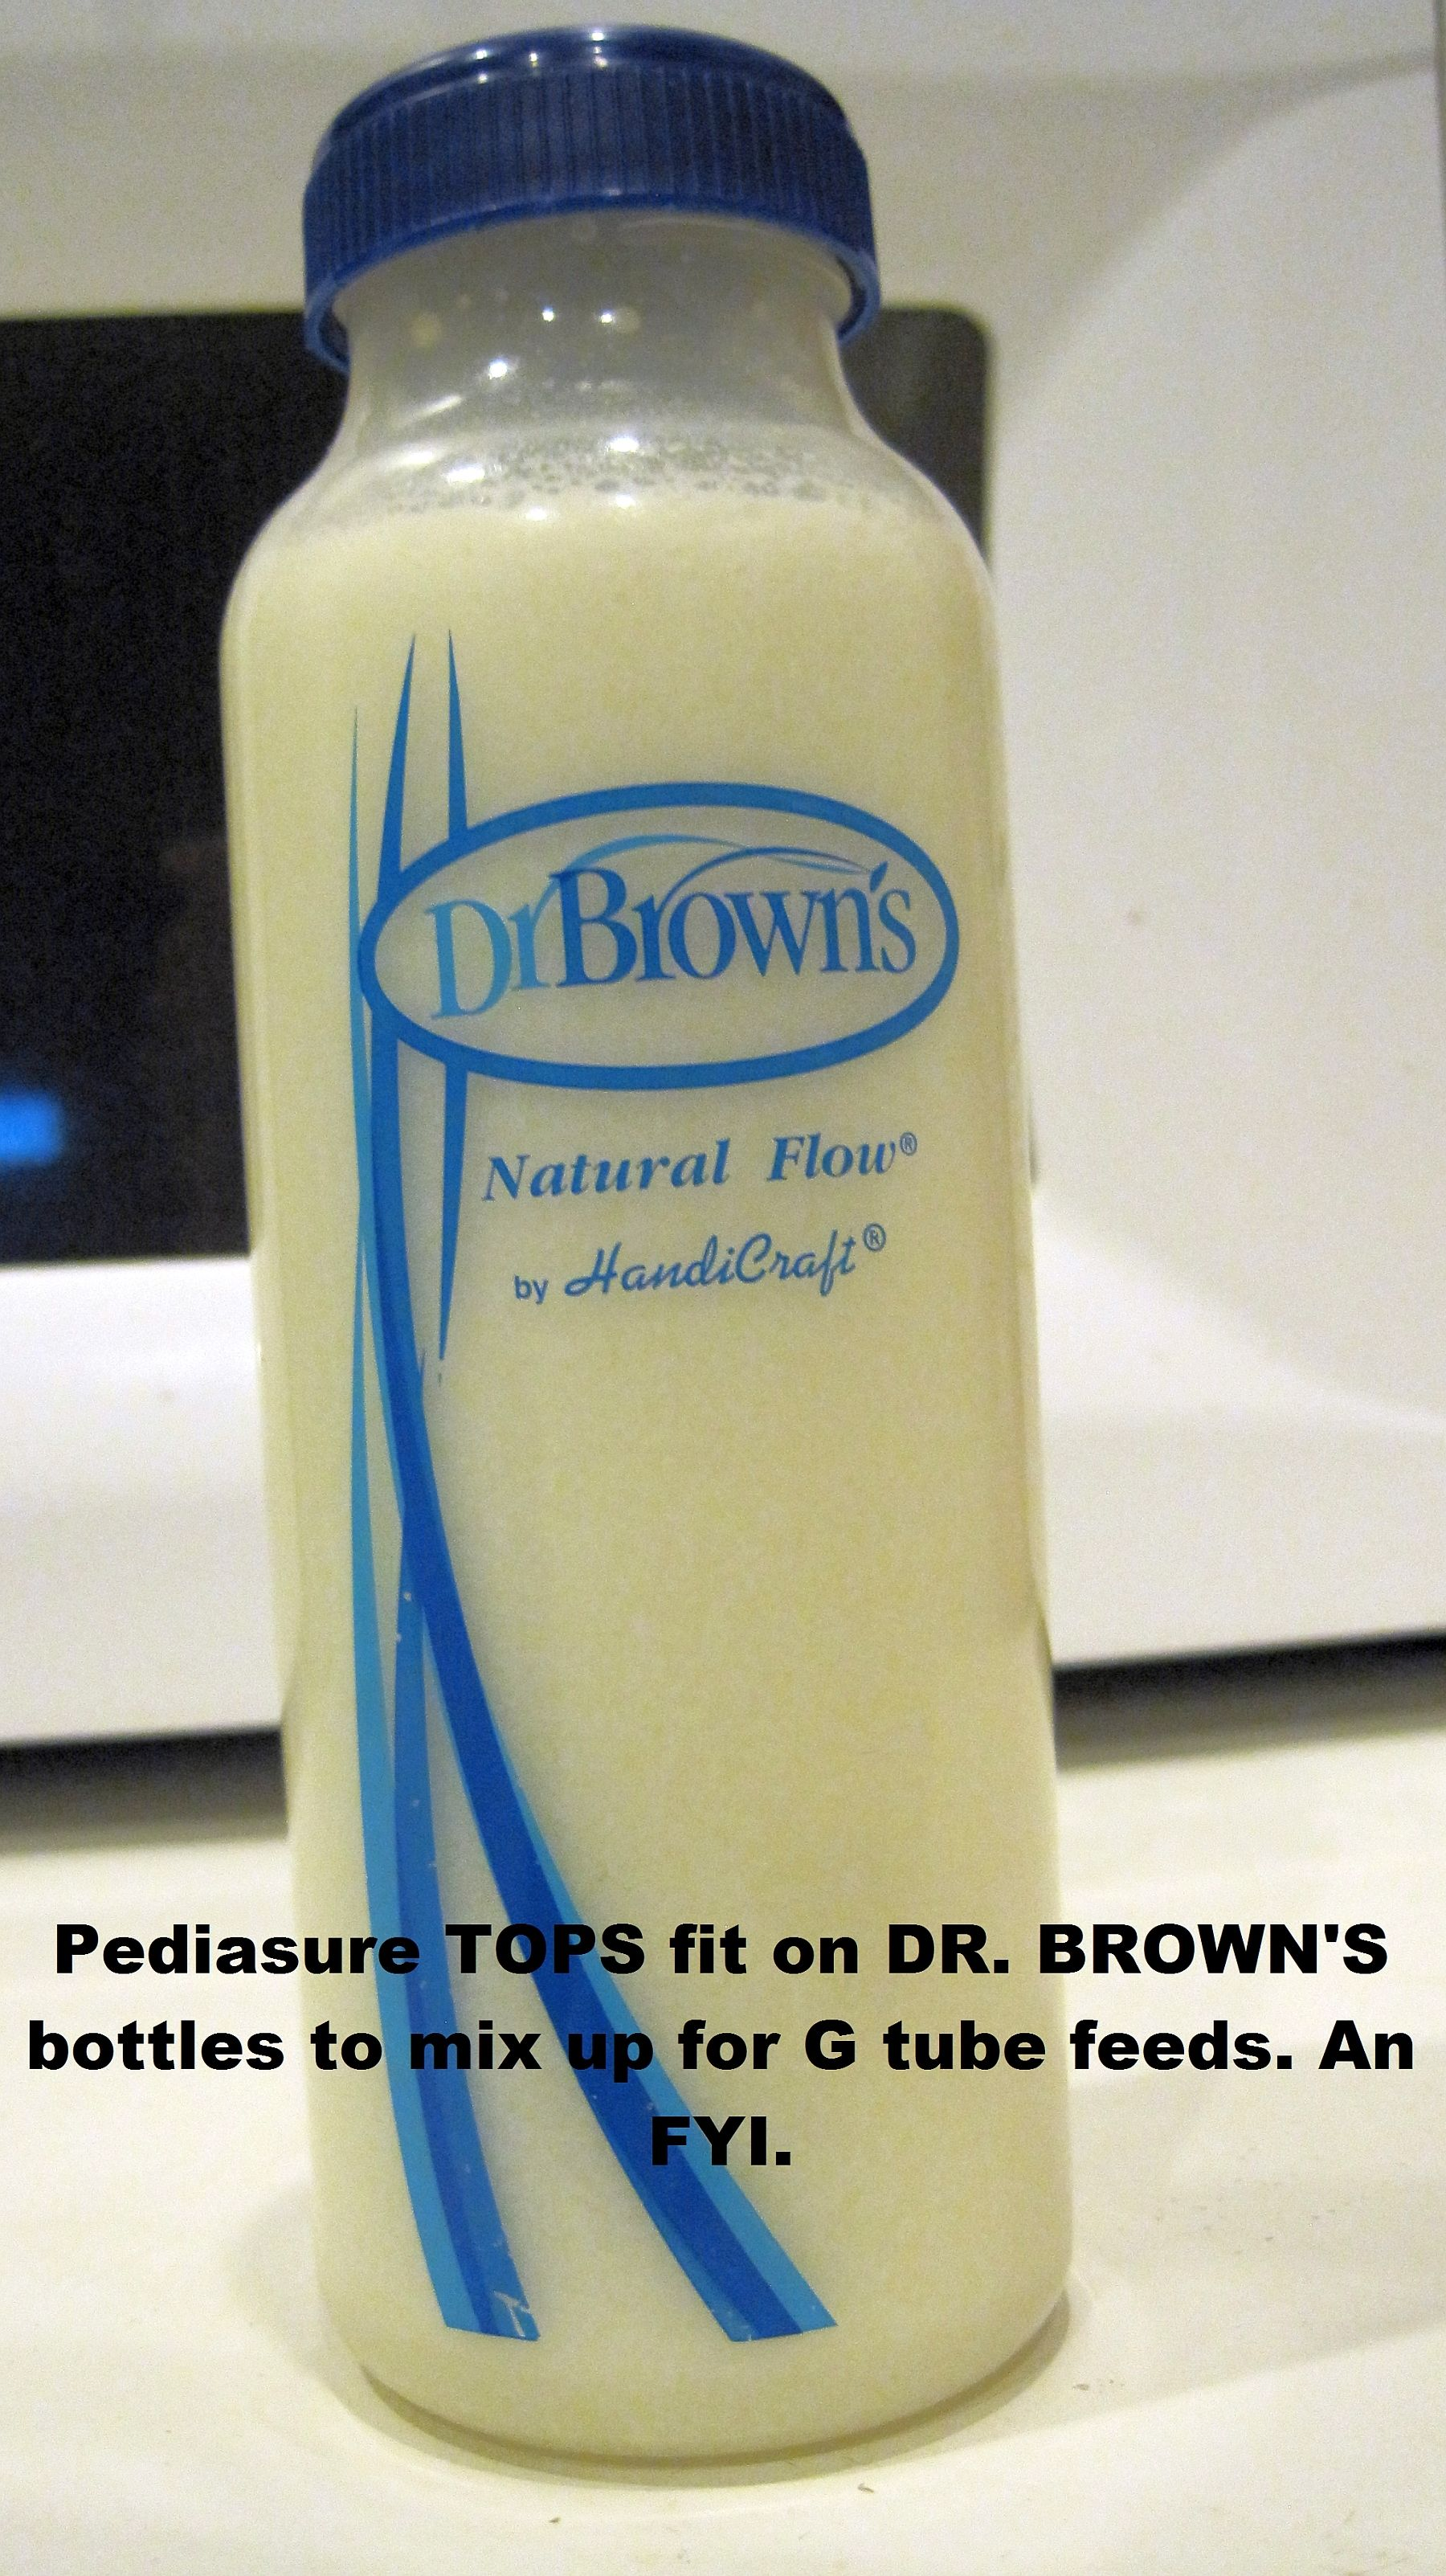 Pediasure bottle tops can fit on Dr. Brown bottles to mix ...